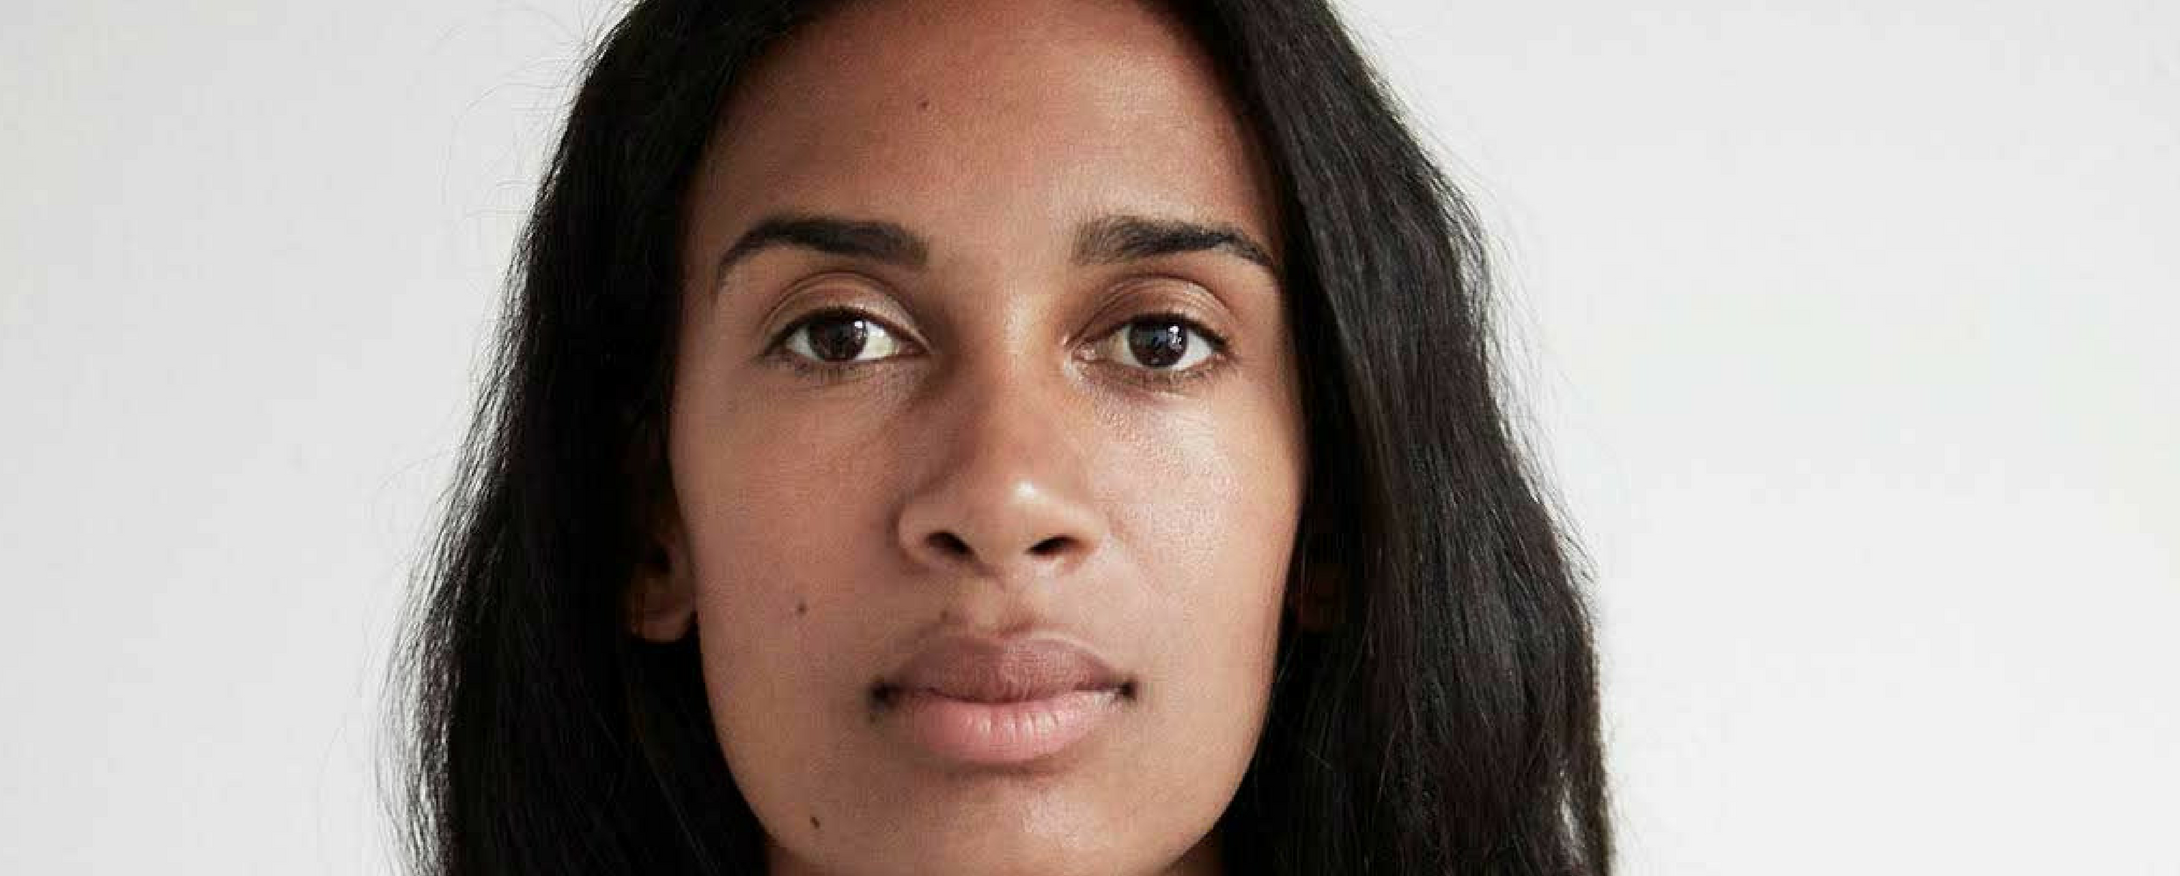 Director Spotlight: Theresa Traore Dahlberg Is the Documentary Maker, Artist and Woman to Watch